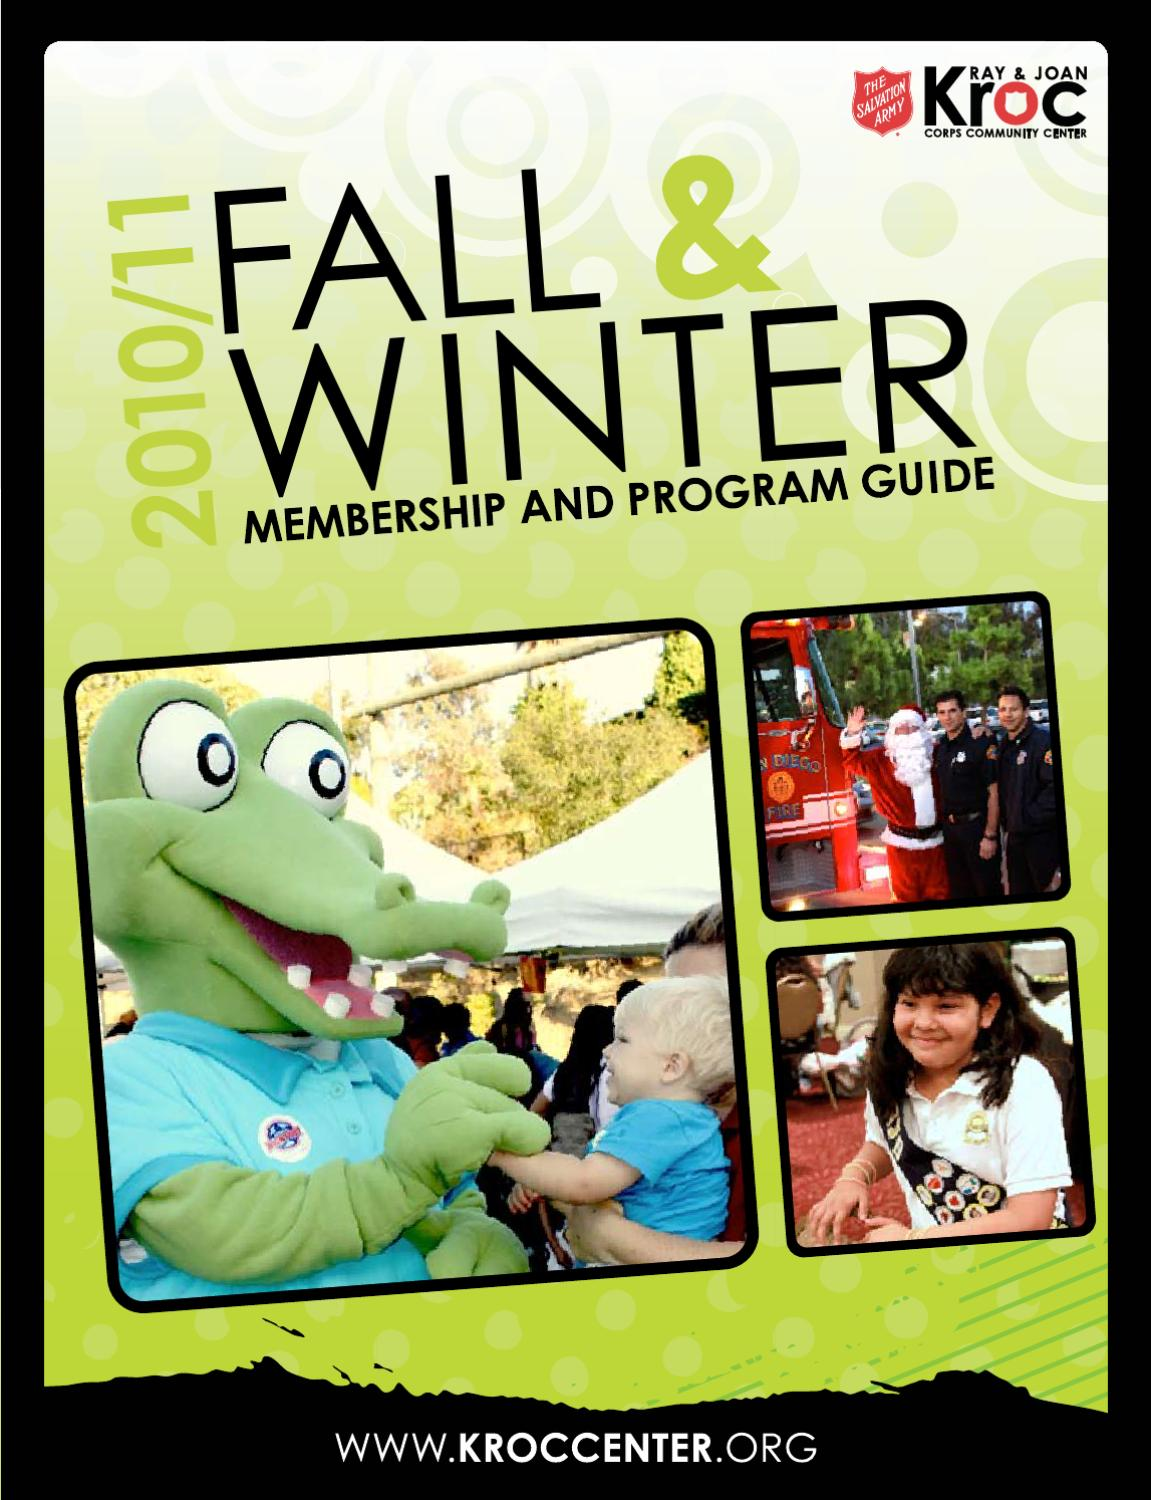 The Salvation Army Kroc Center Fall & Winter 2010/11 Program Guide ...